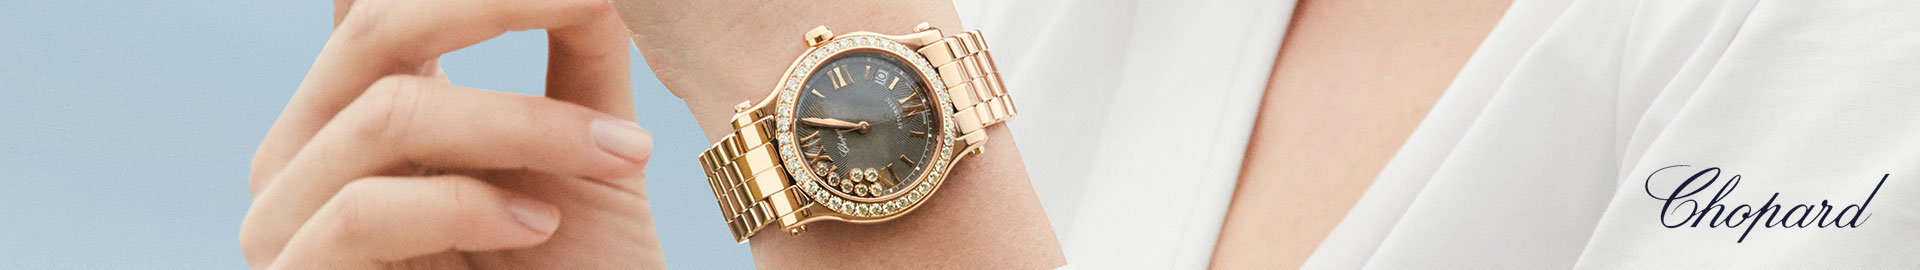 Chopard ladies watches Zazare Diamonds